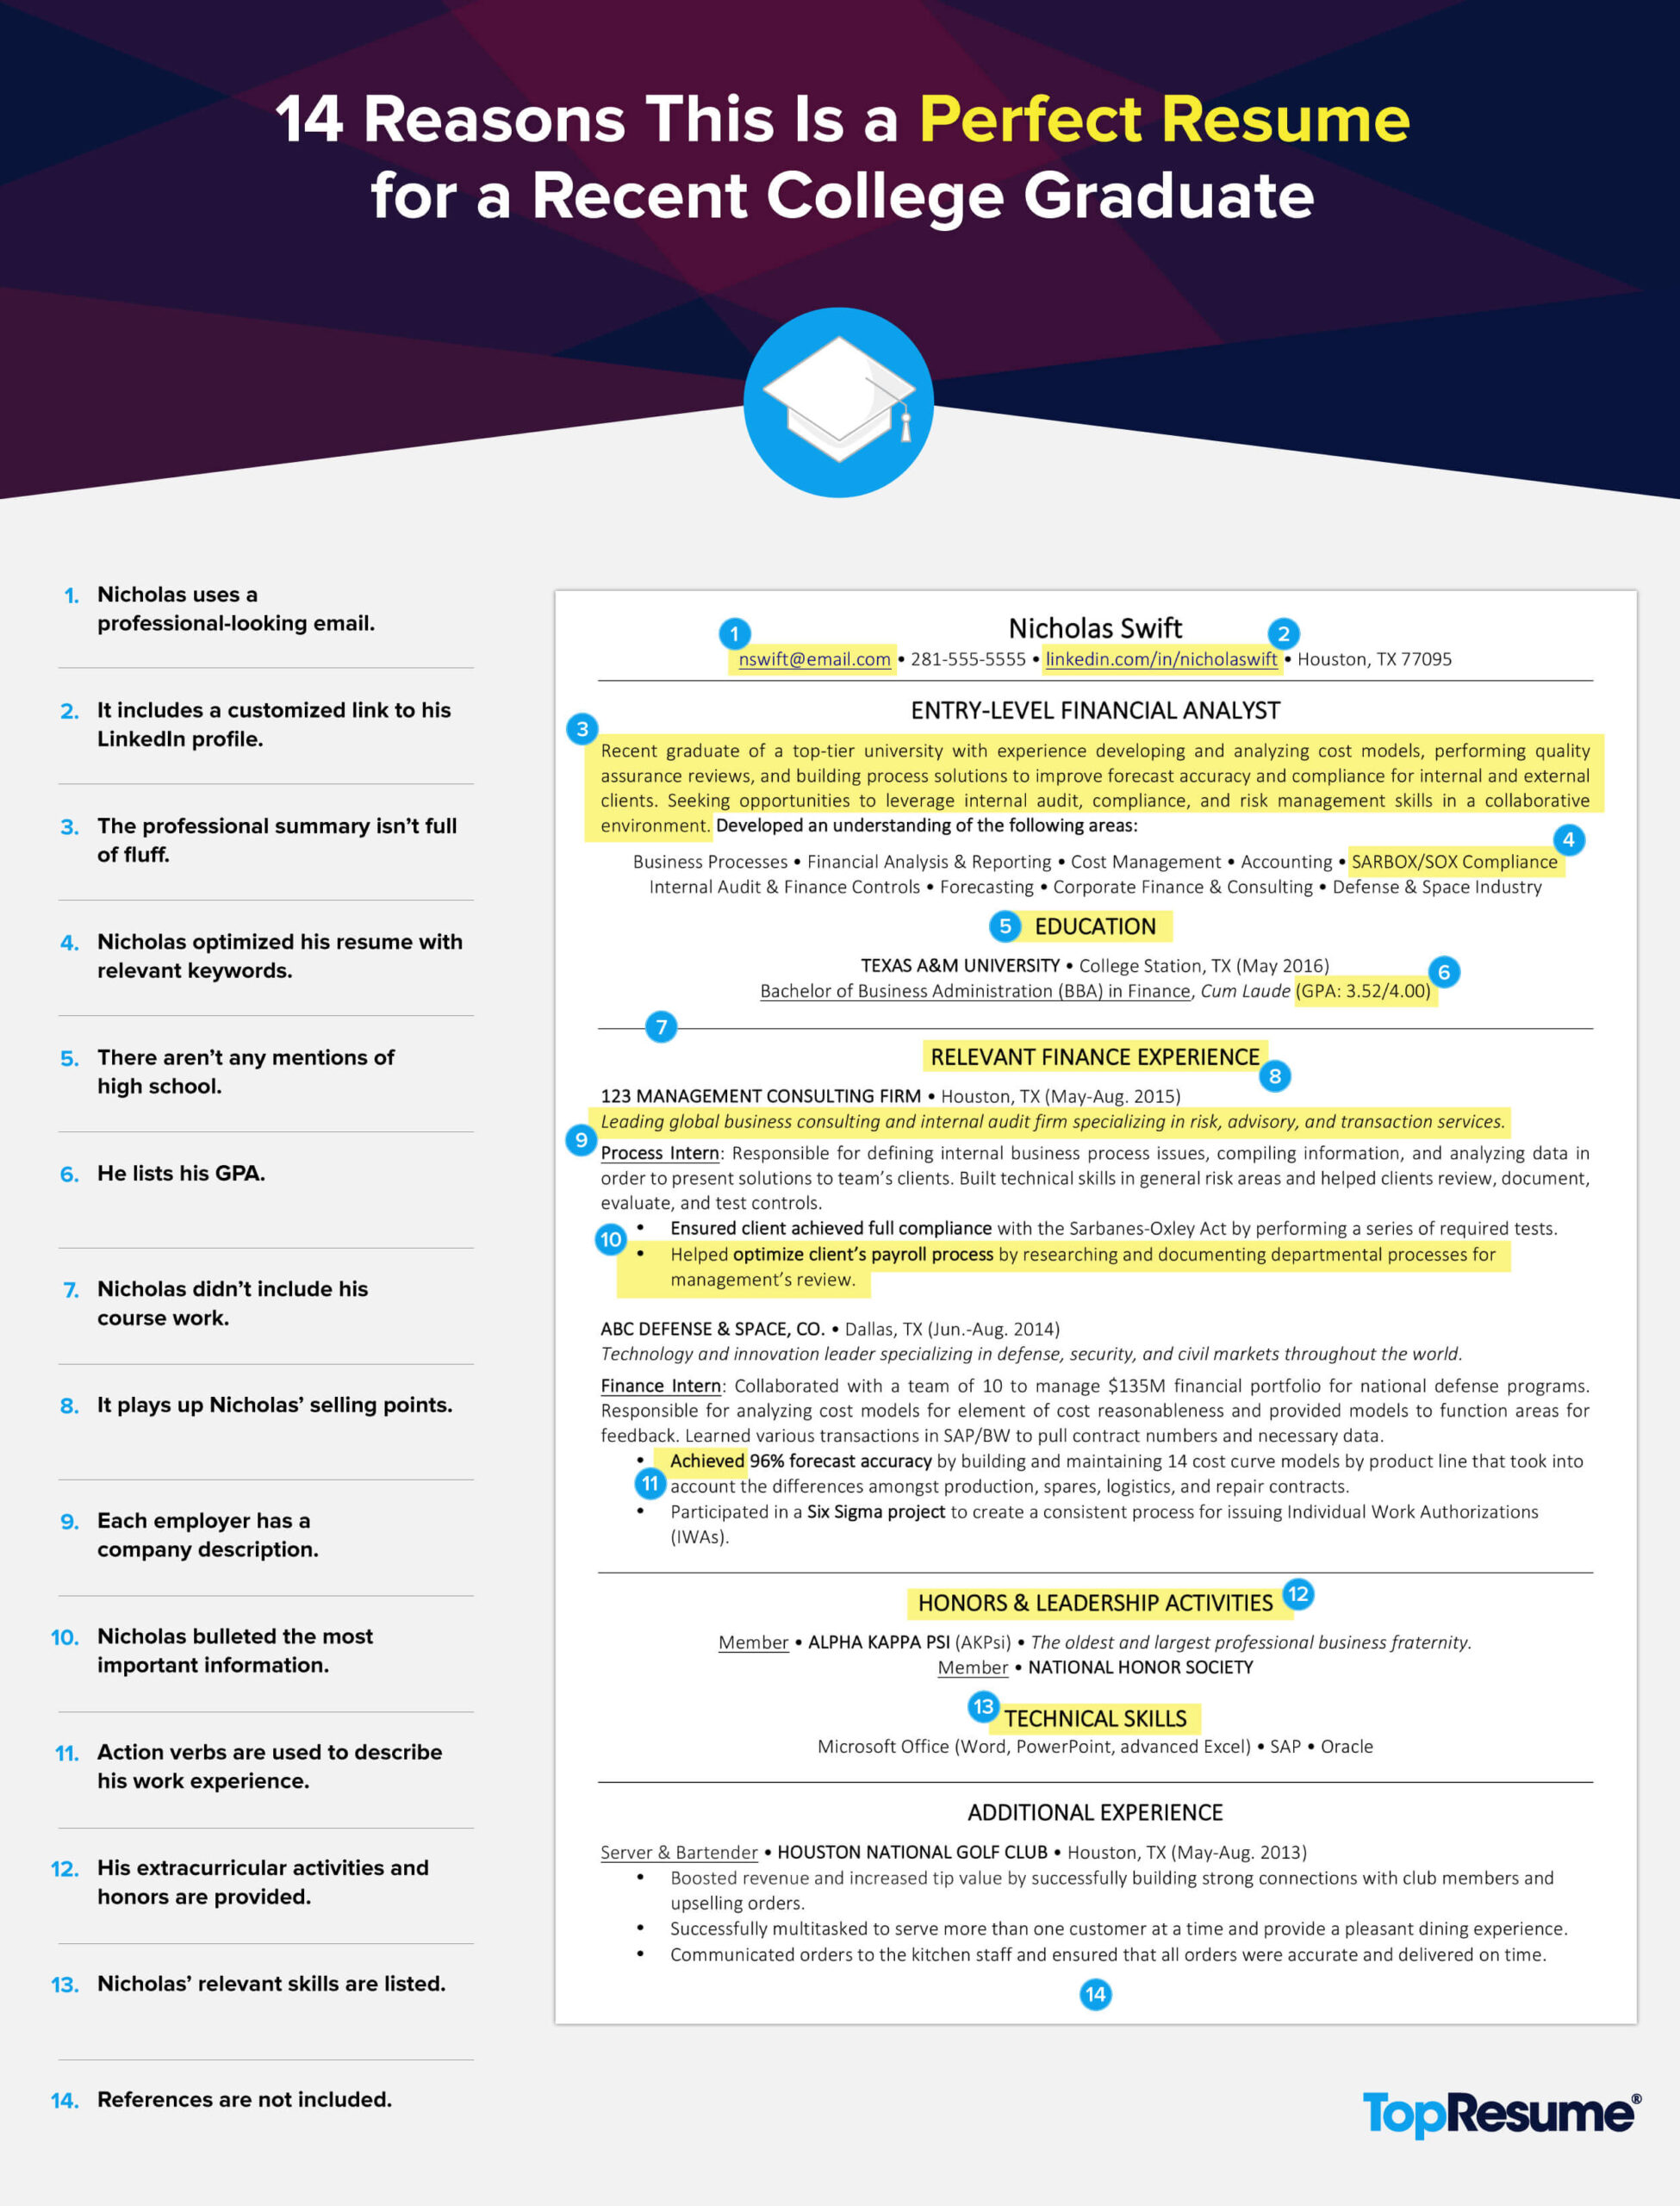 reasons this is perfect recent college graduate resume topresume new 160516graduate Resume New College Graduate Resume